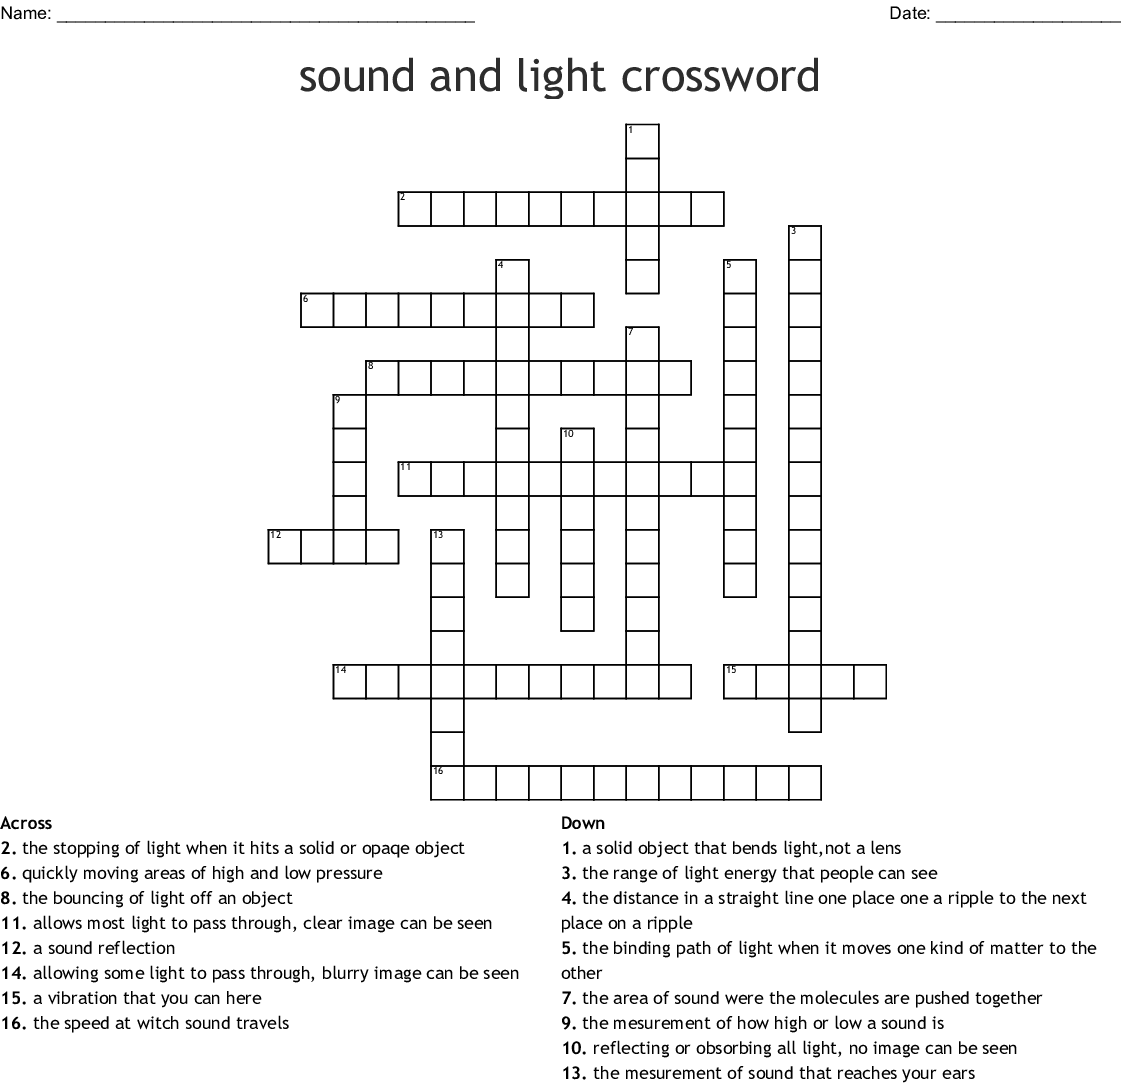 Science - Light & Sound Crossword - WordMint